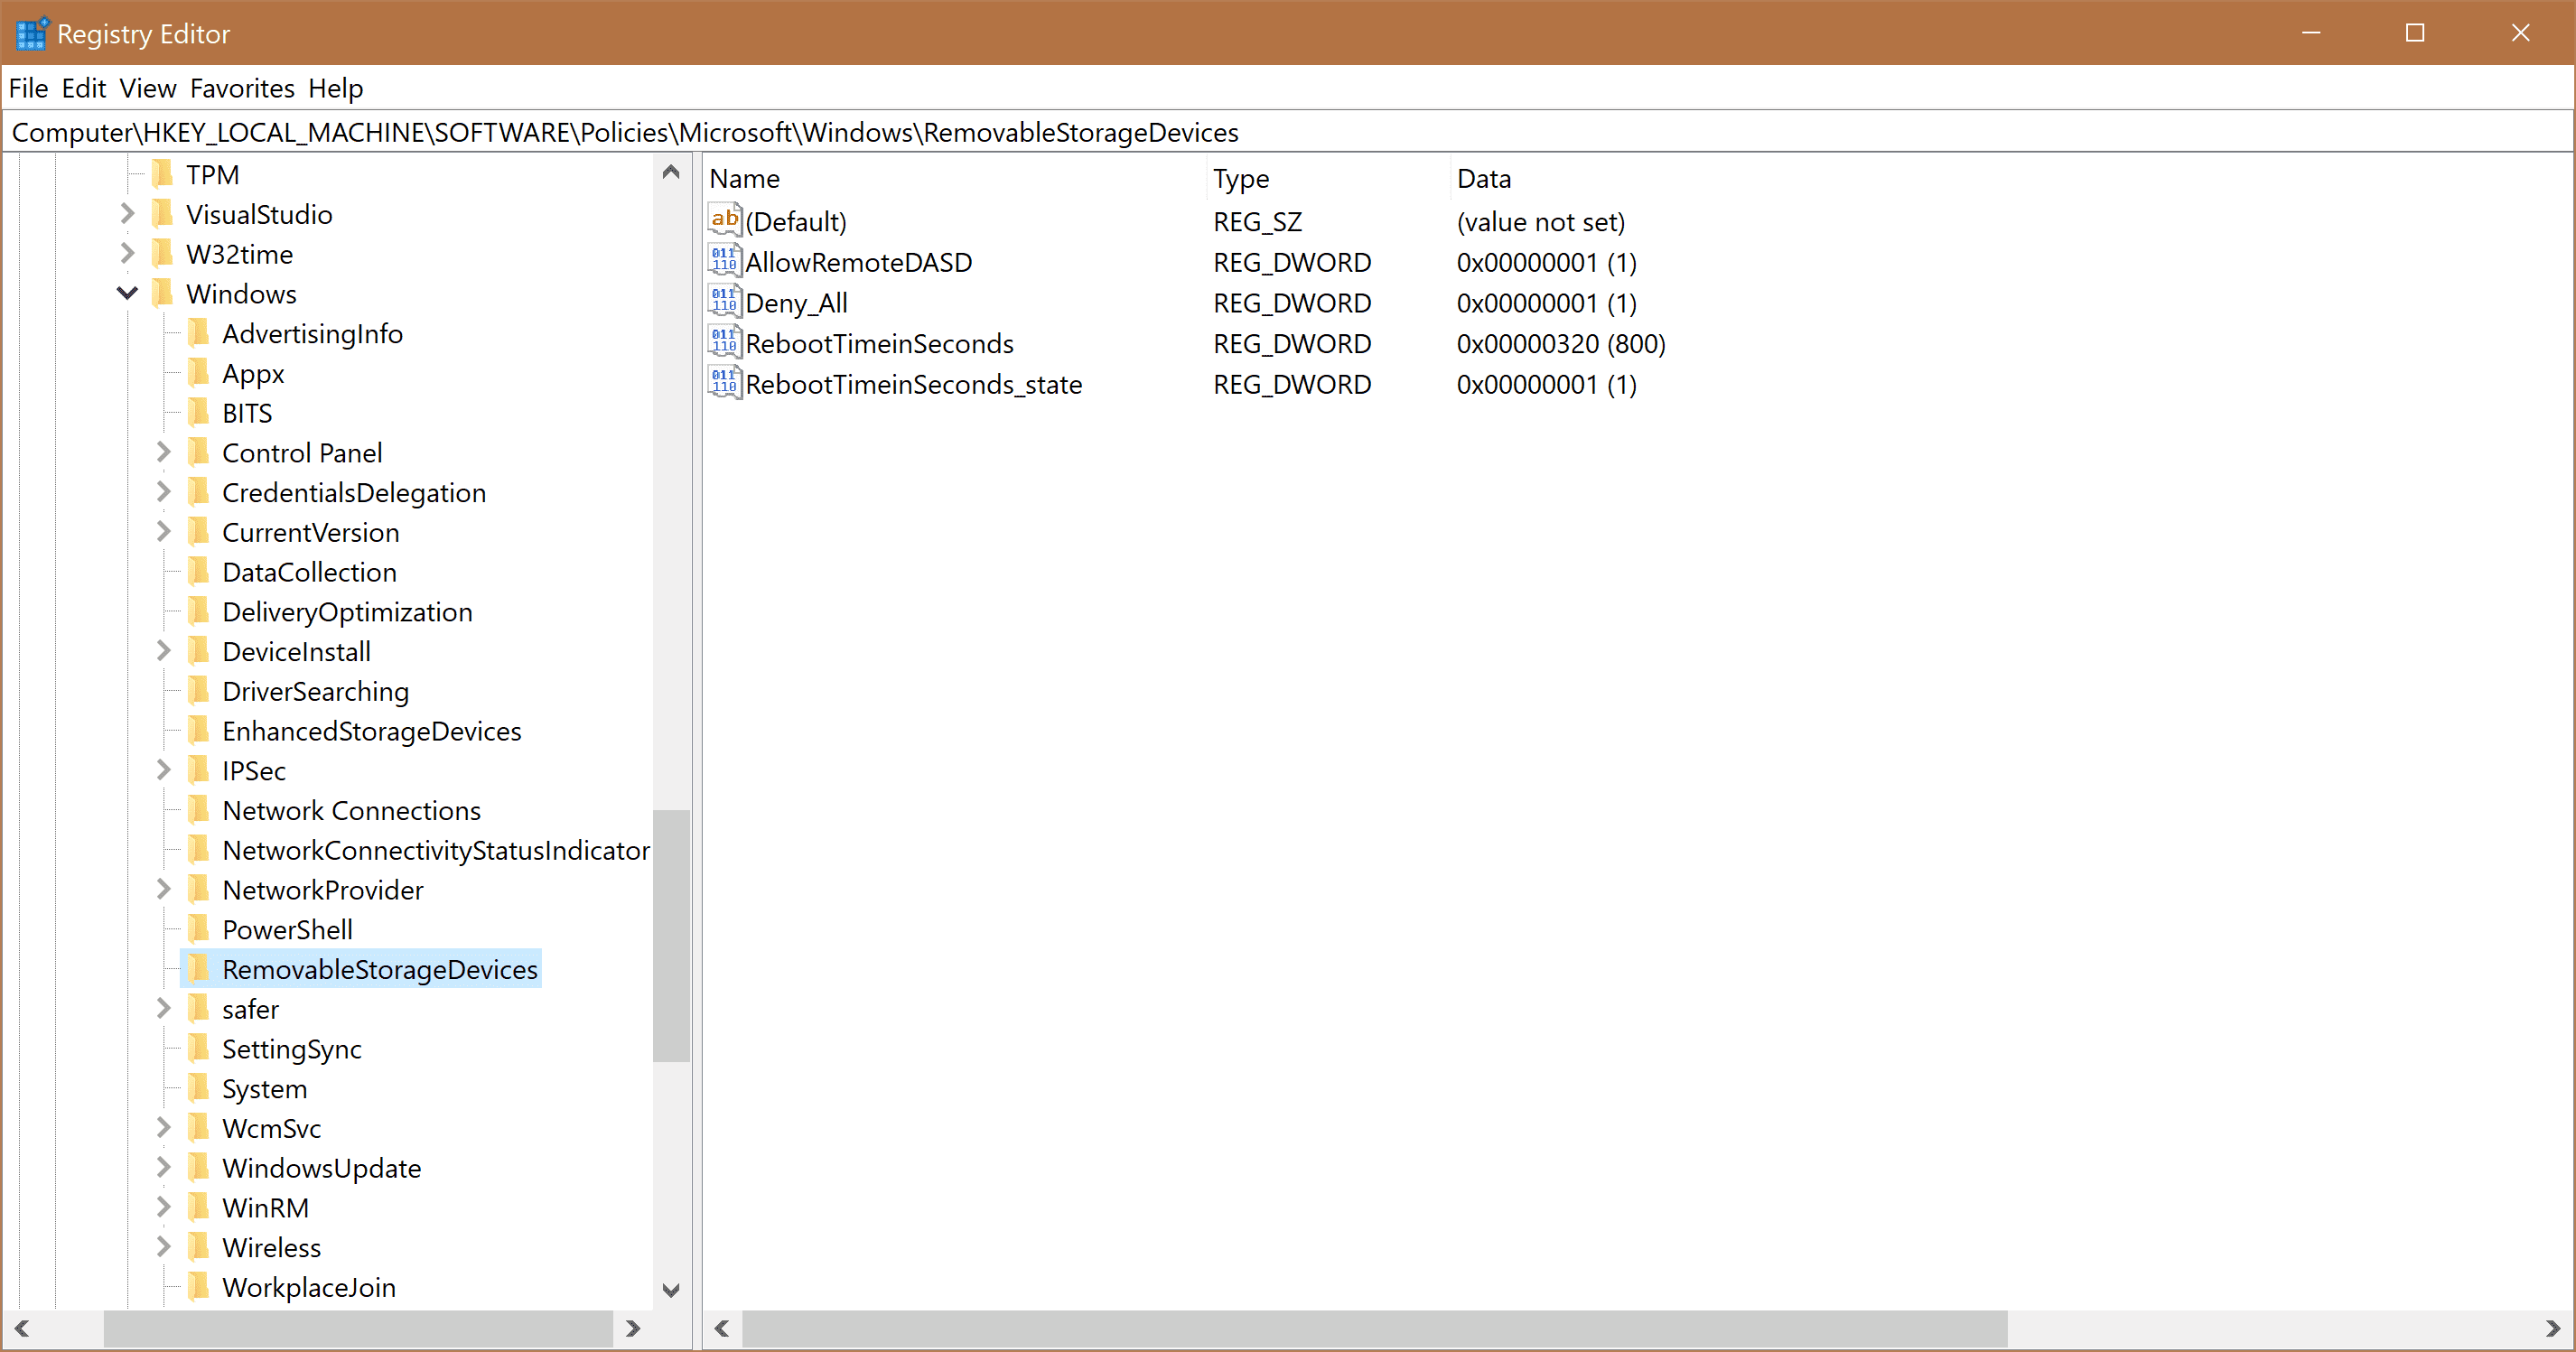 Policy Keys in the Registry Editor